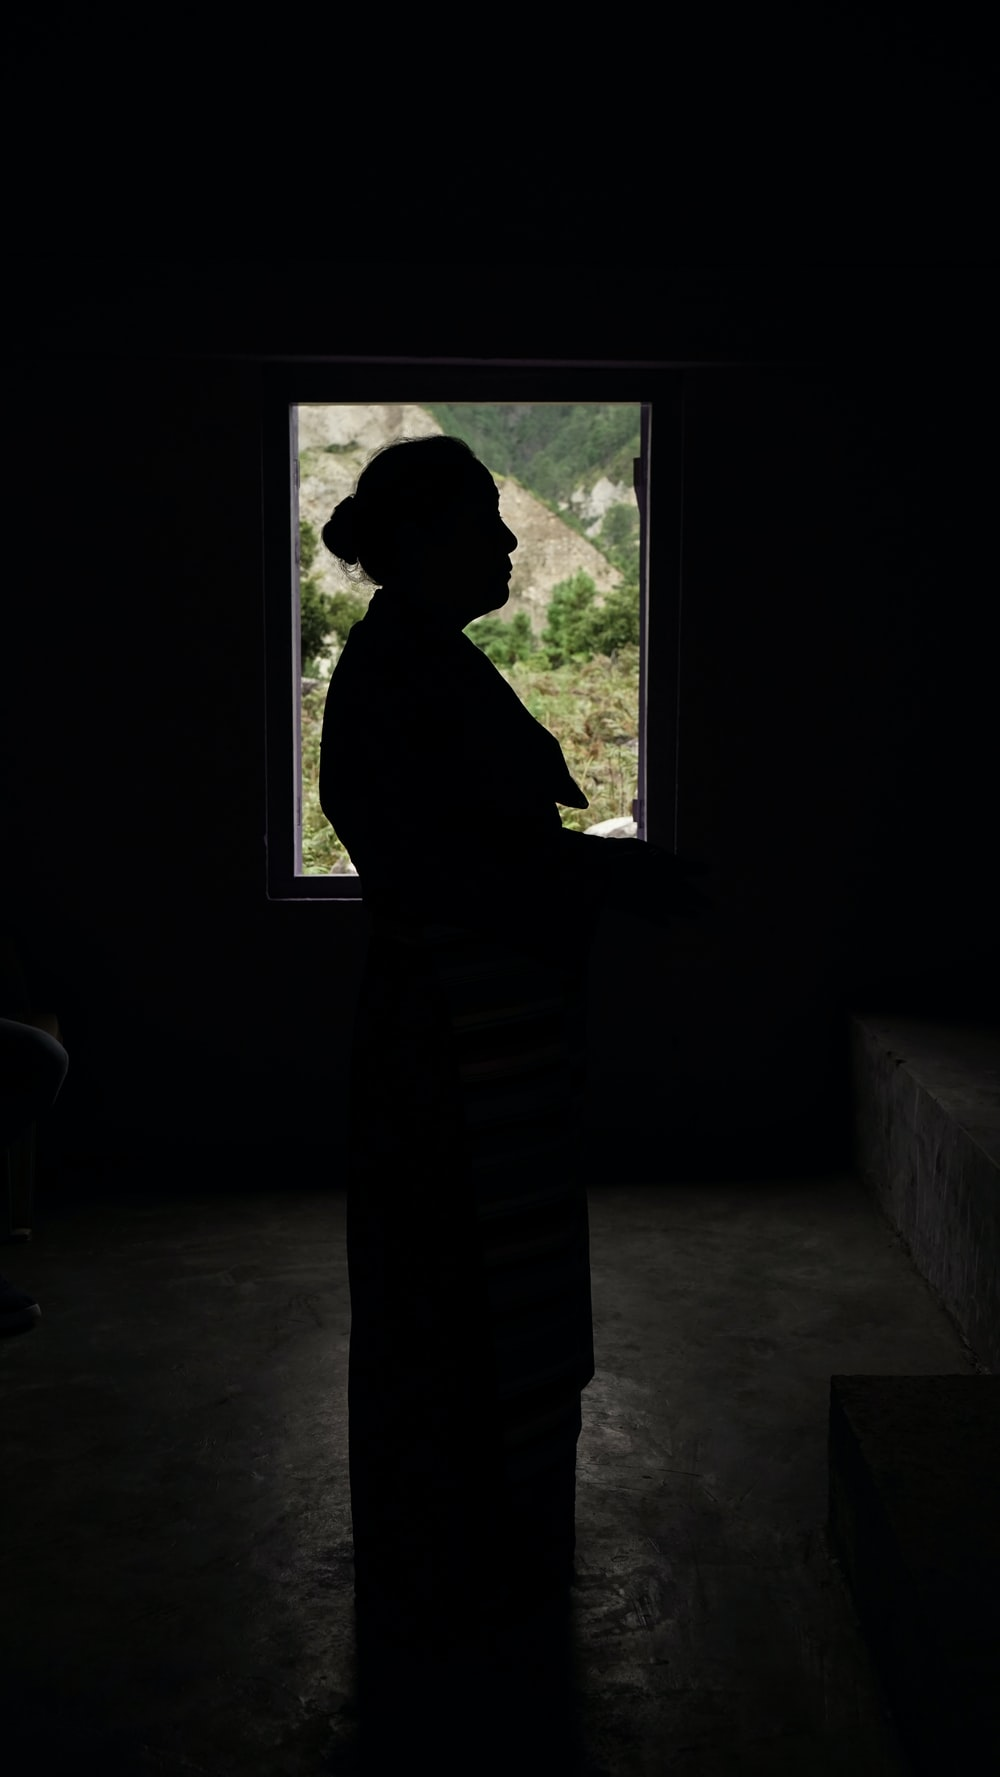 silhouette of woman standing inside room